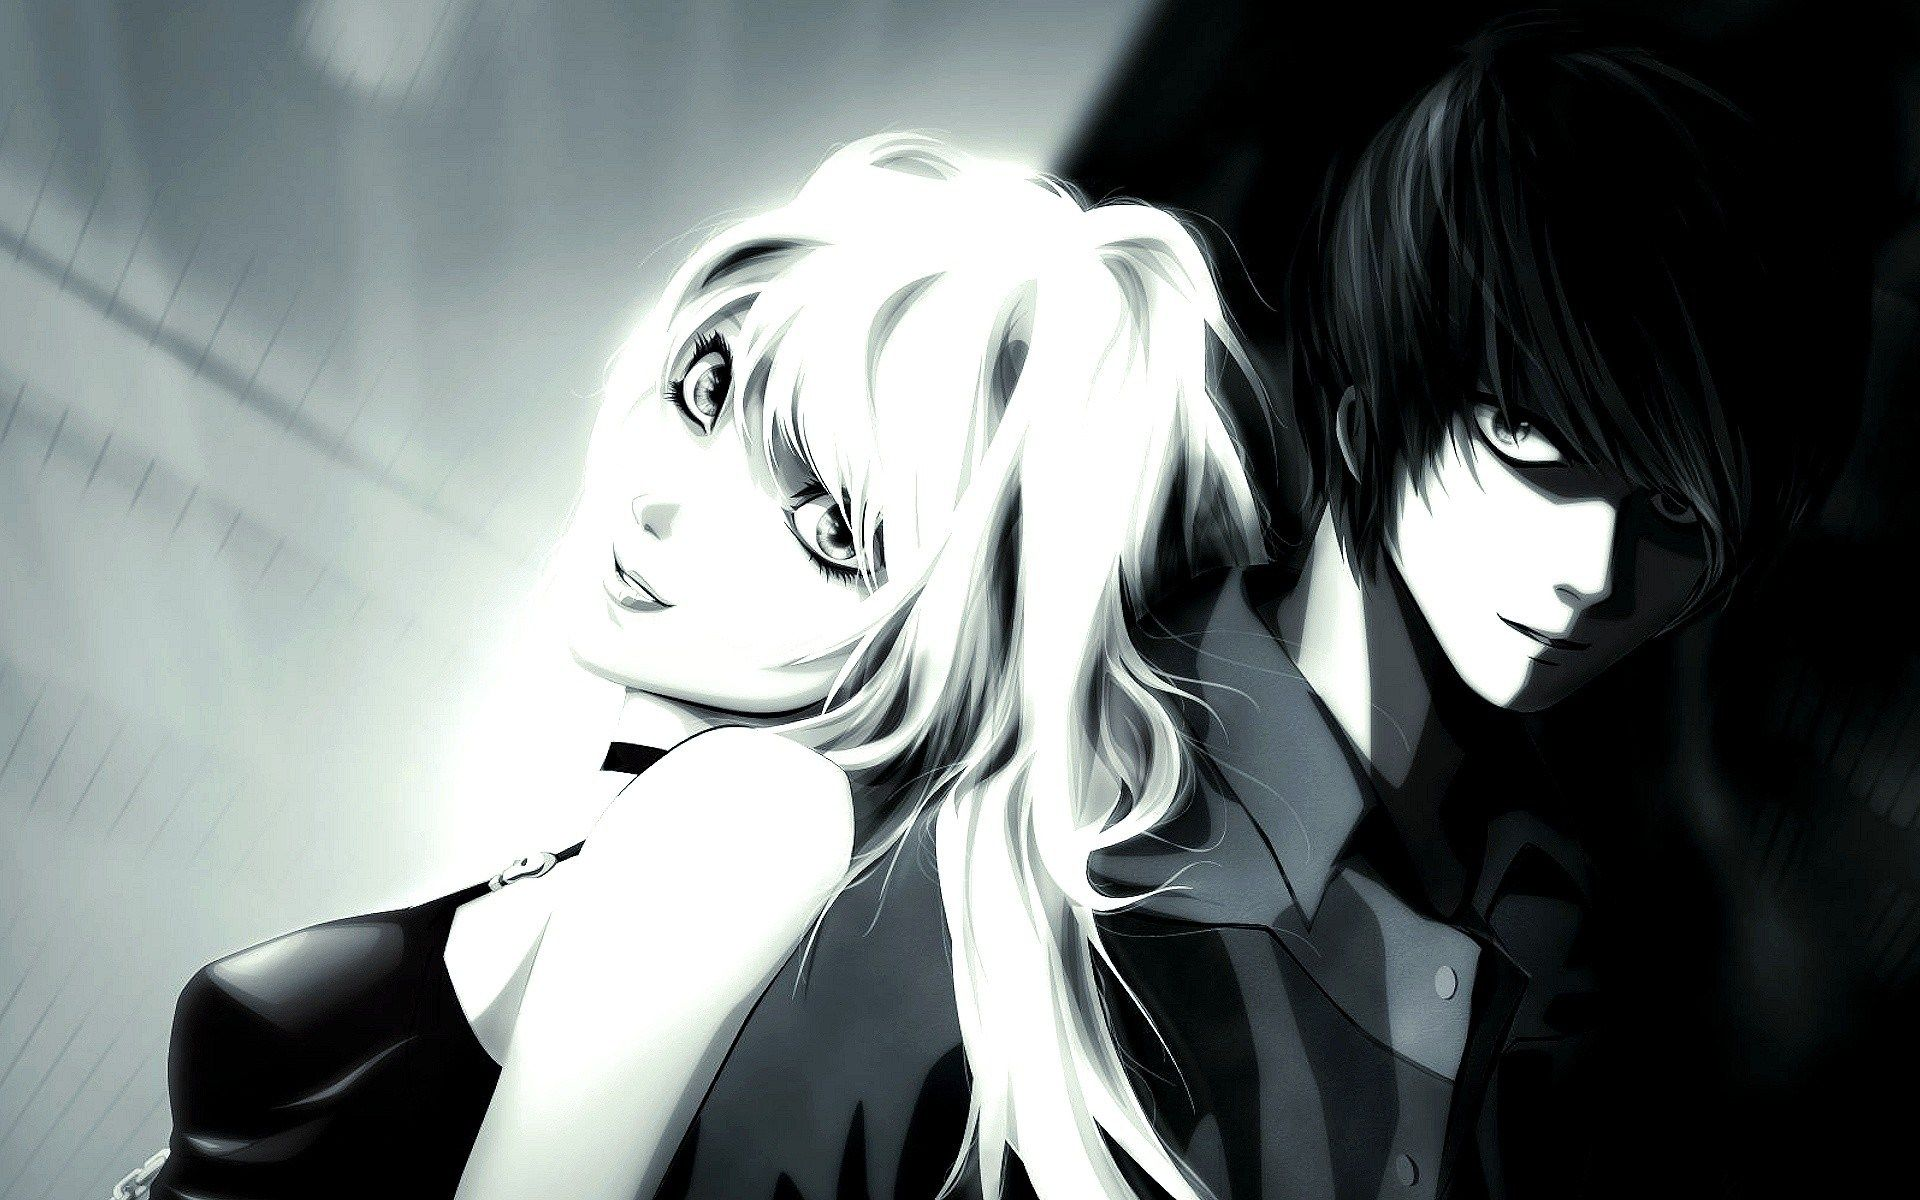 Anime Boy And Girl In Love Hd Wallpaper High Definition Wallpapers